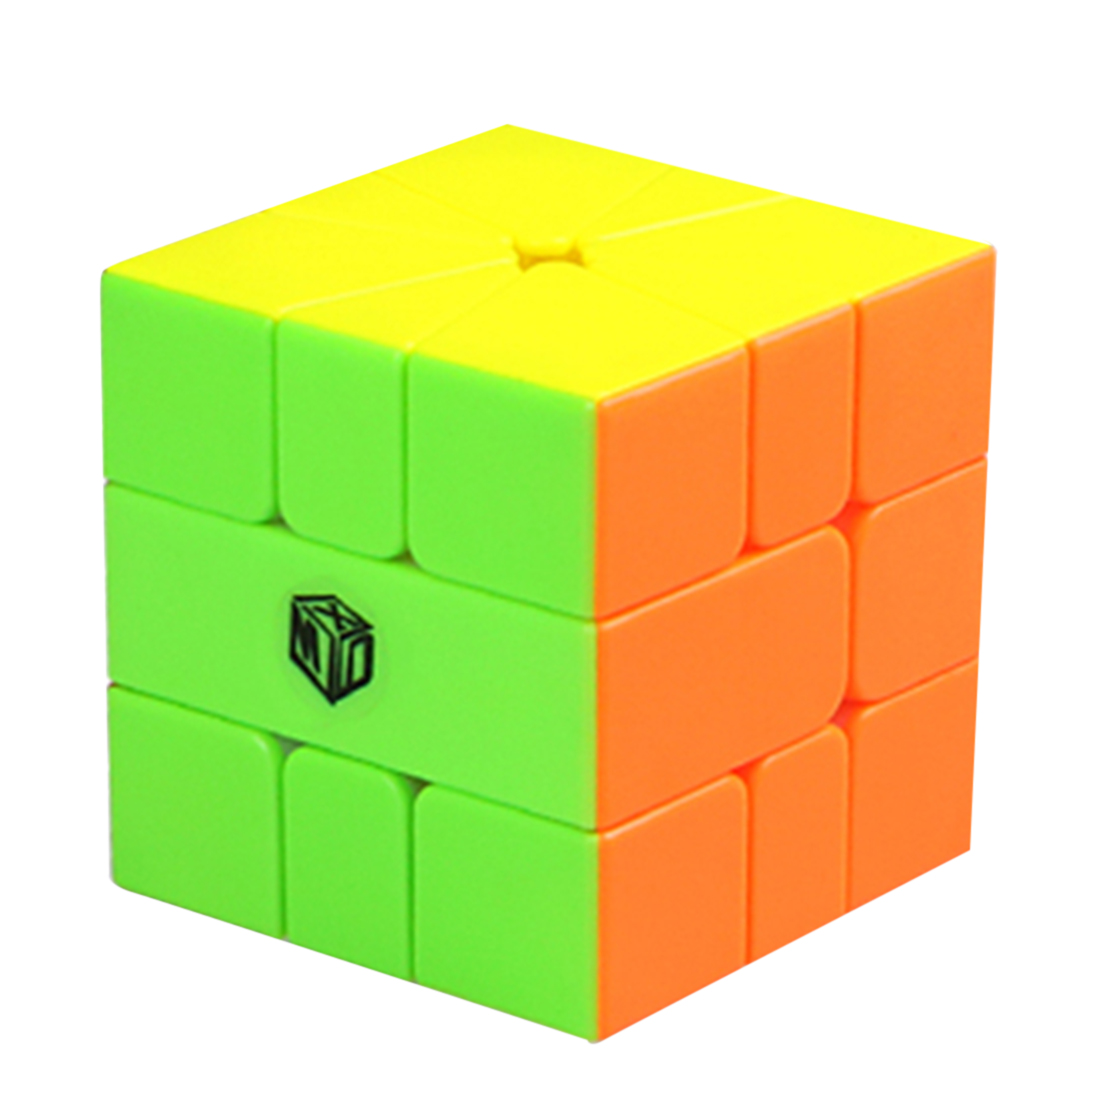 Qiyi Magic Cube Volt SQ1 Refined 3x3 Cube for Competition Multicolor